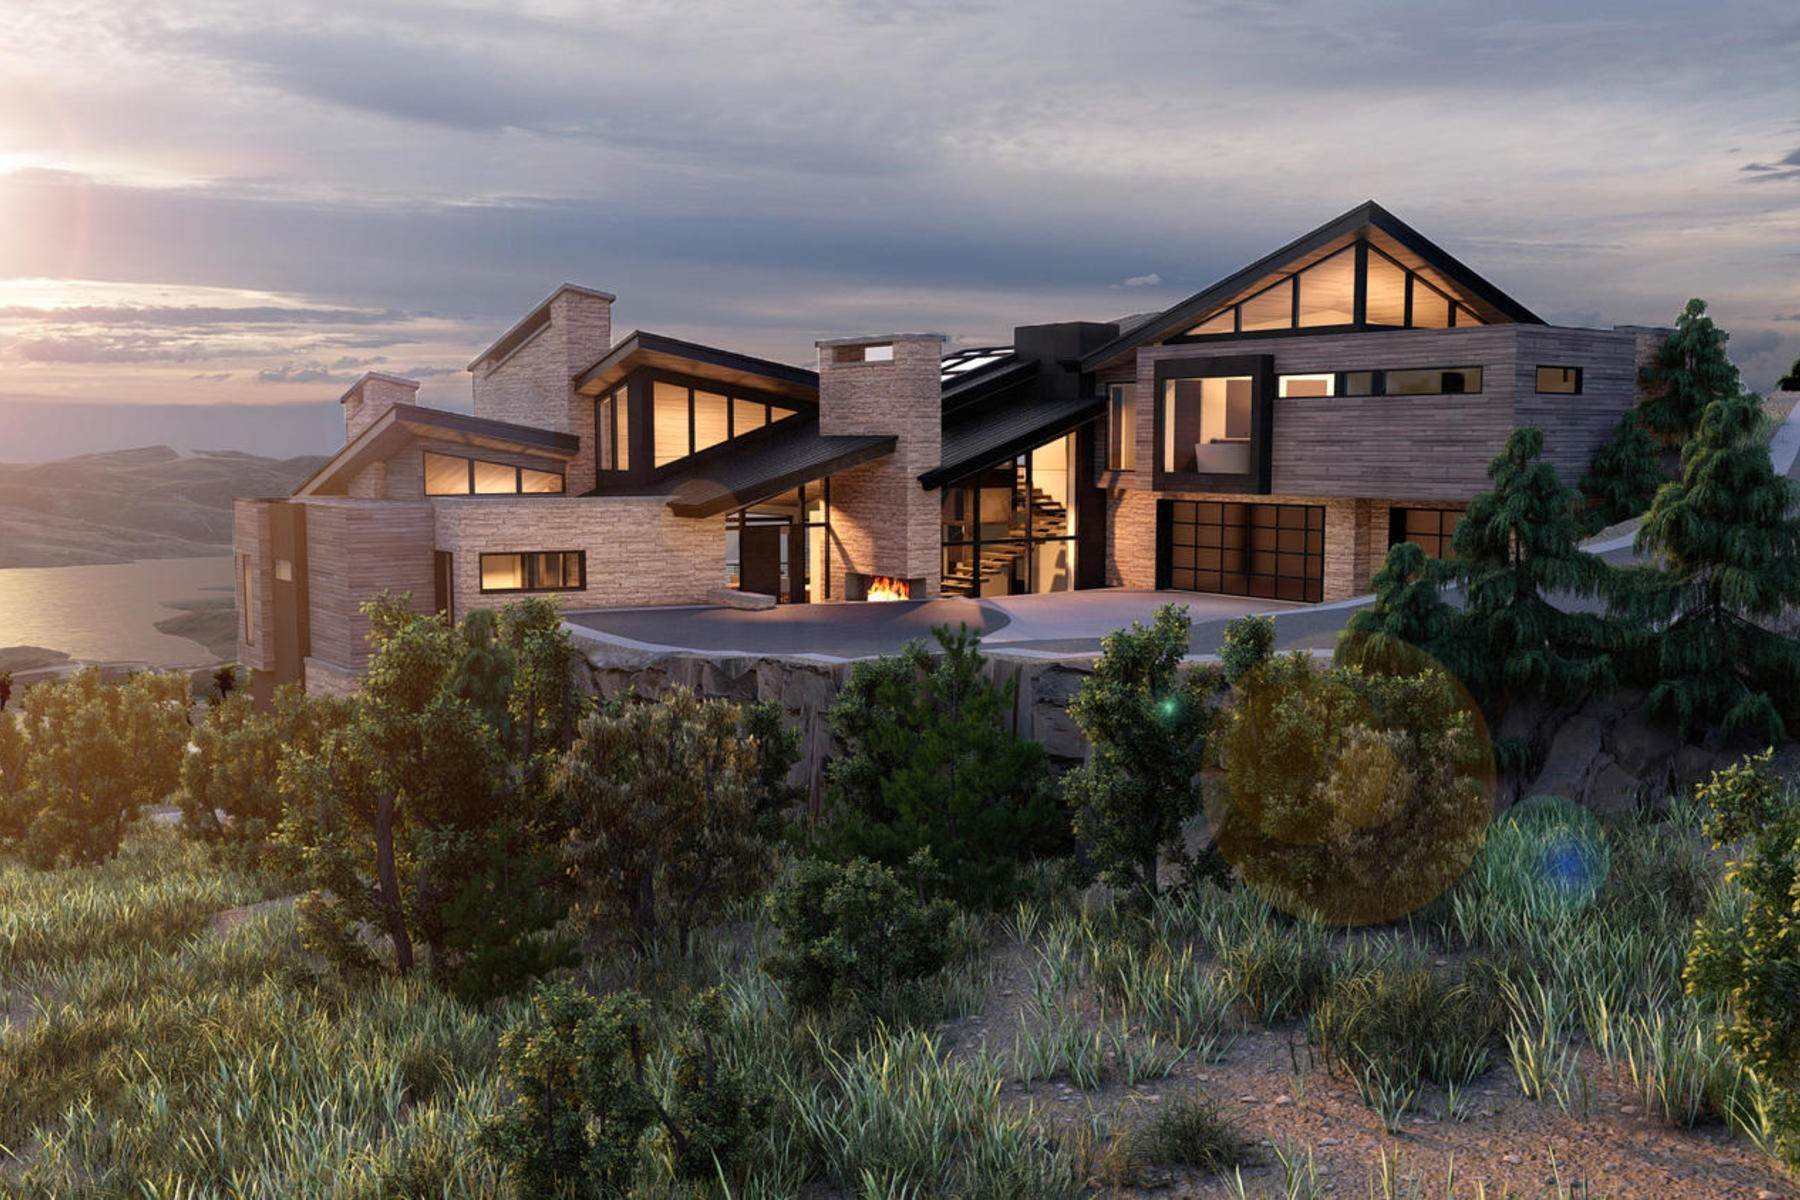 Single Family Homes for Sale at Exceptional Ski-In/Ski-Out Deer Valley Estate 2923 W Jordanelle View Dr Park City, Utah 84060 United States